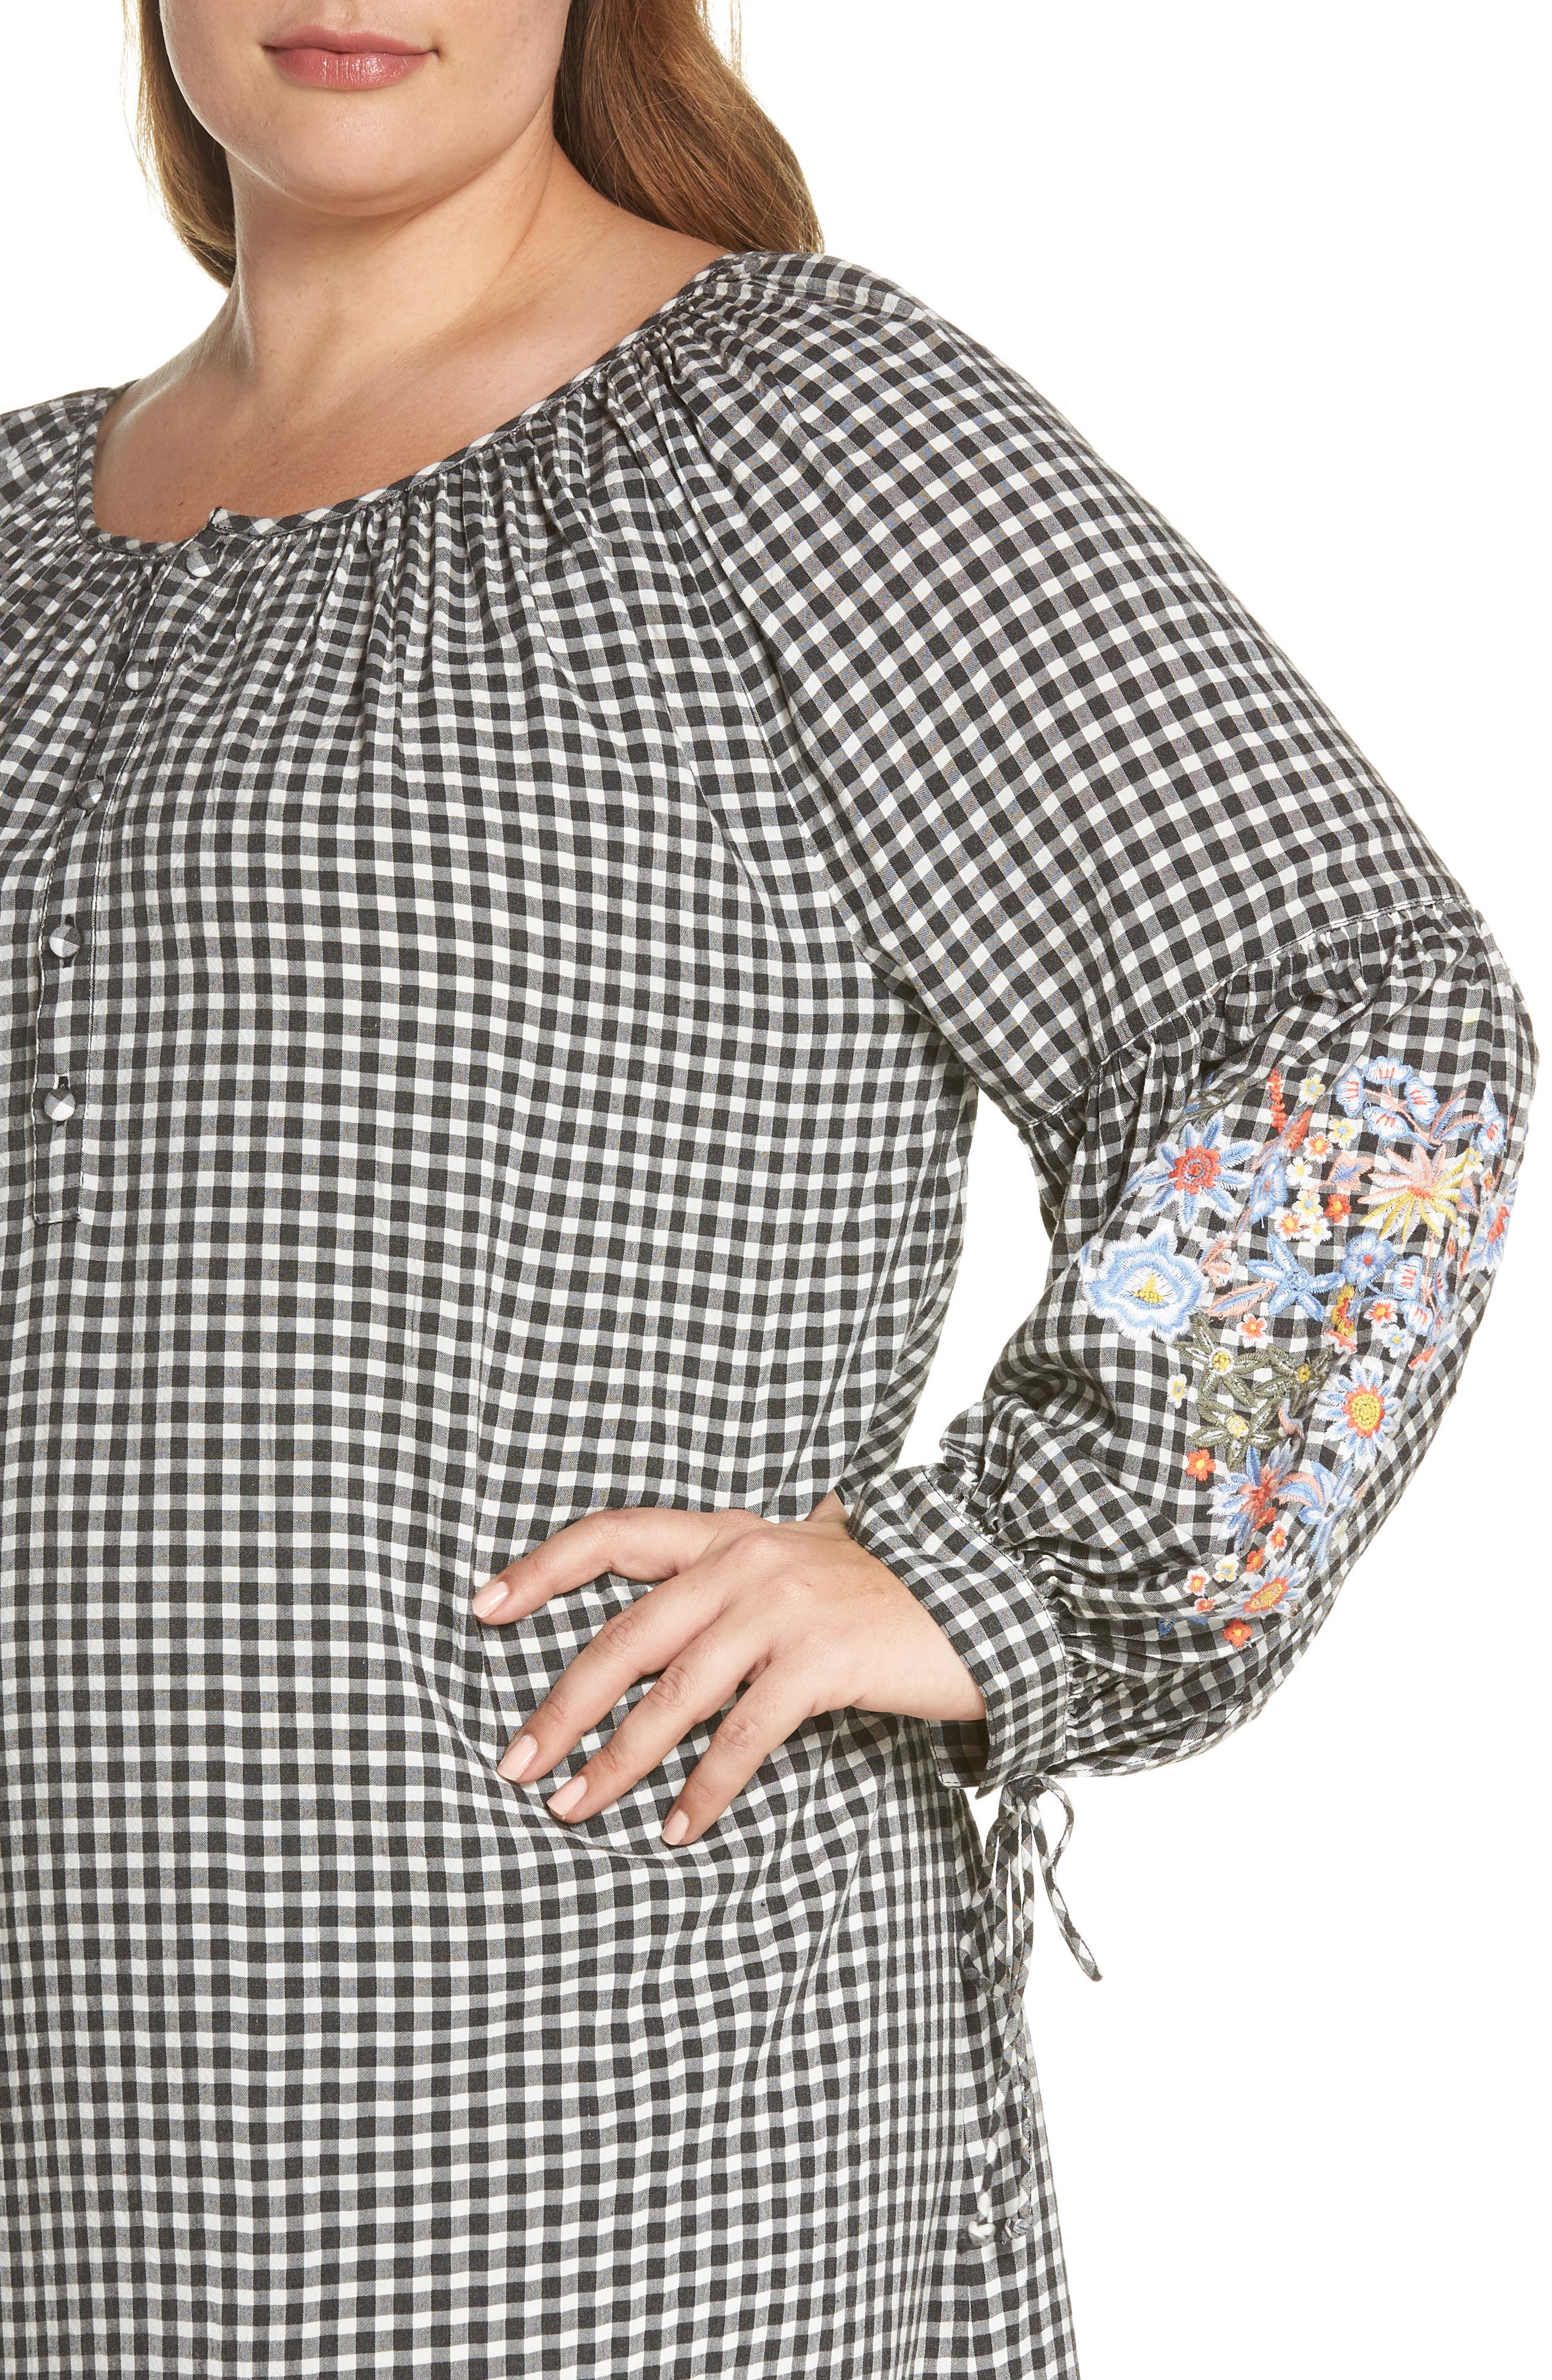 Embroidered Puff Sleeve Gingham Shift Dress,                             Alternate thumbnail 6, color,                             Black-White Gingham